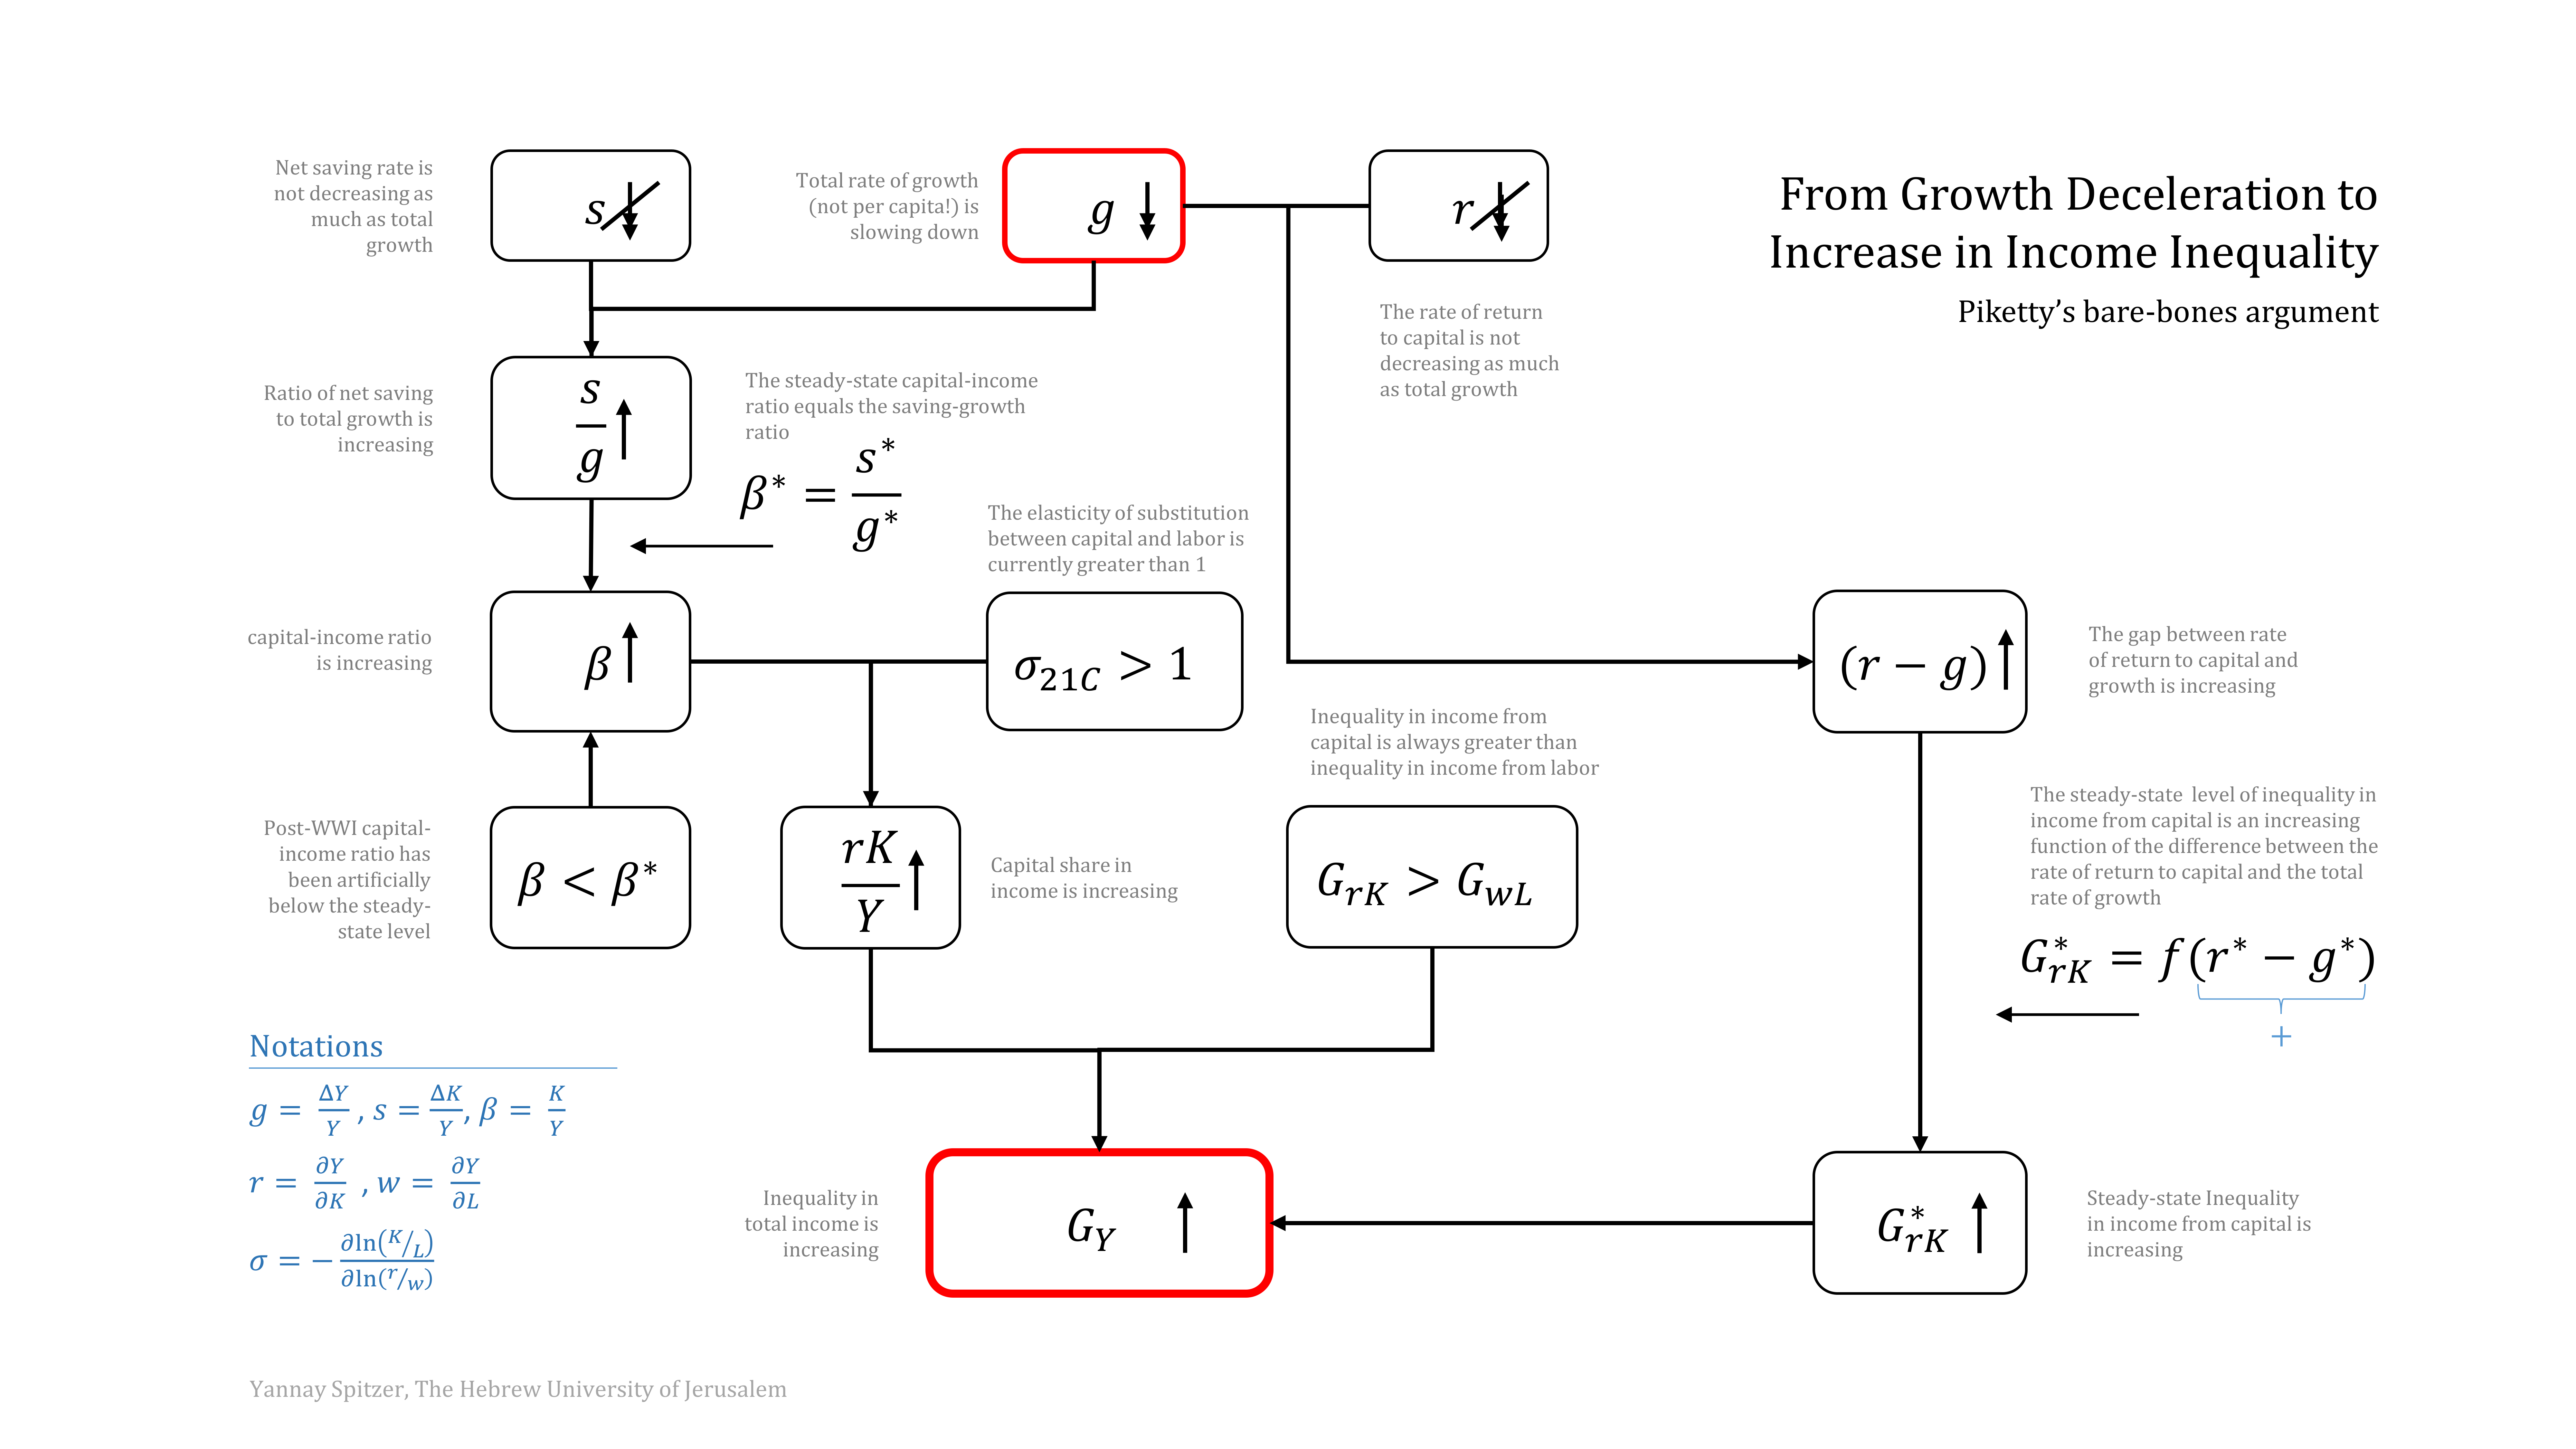 Pikettys bare bones argument yannay spitzer on the economics of inequality in the pep program philosophy econ poli sci at the hebrew university i drafted this flow chart to help students make nvjuhfo Images